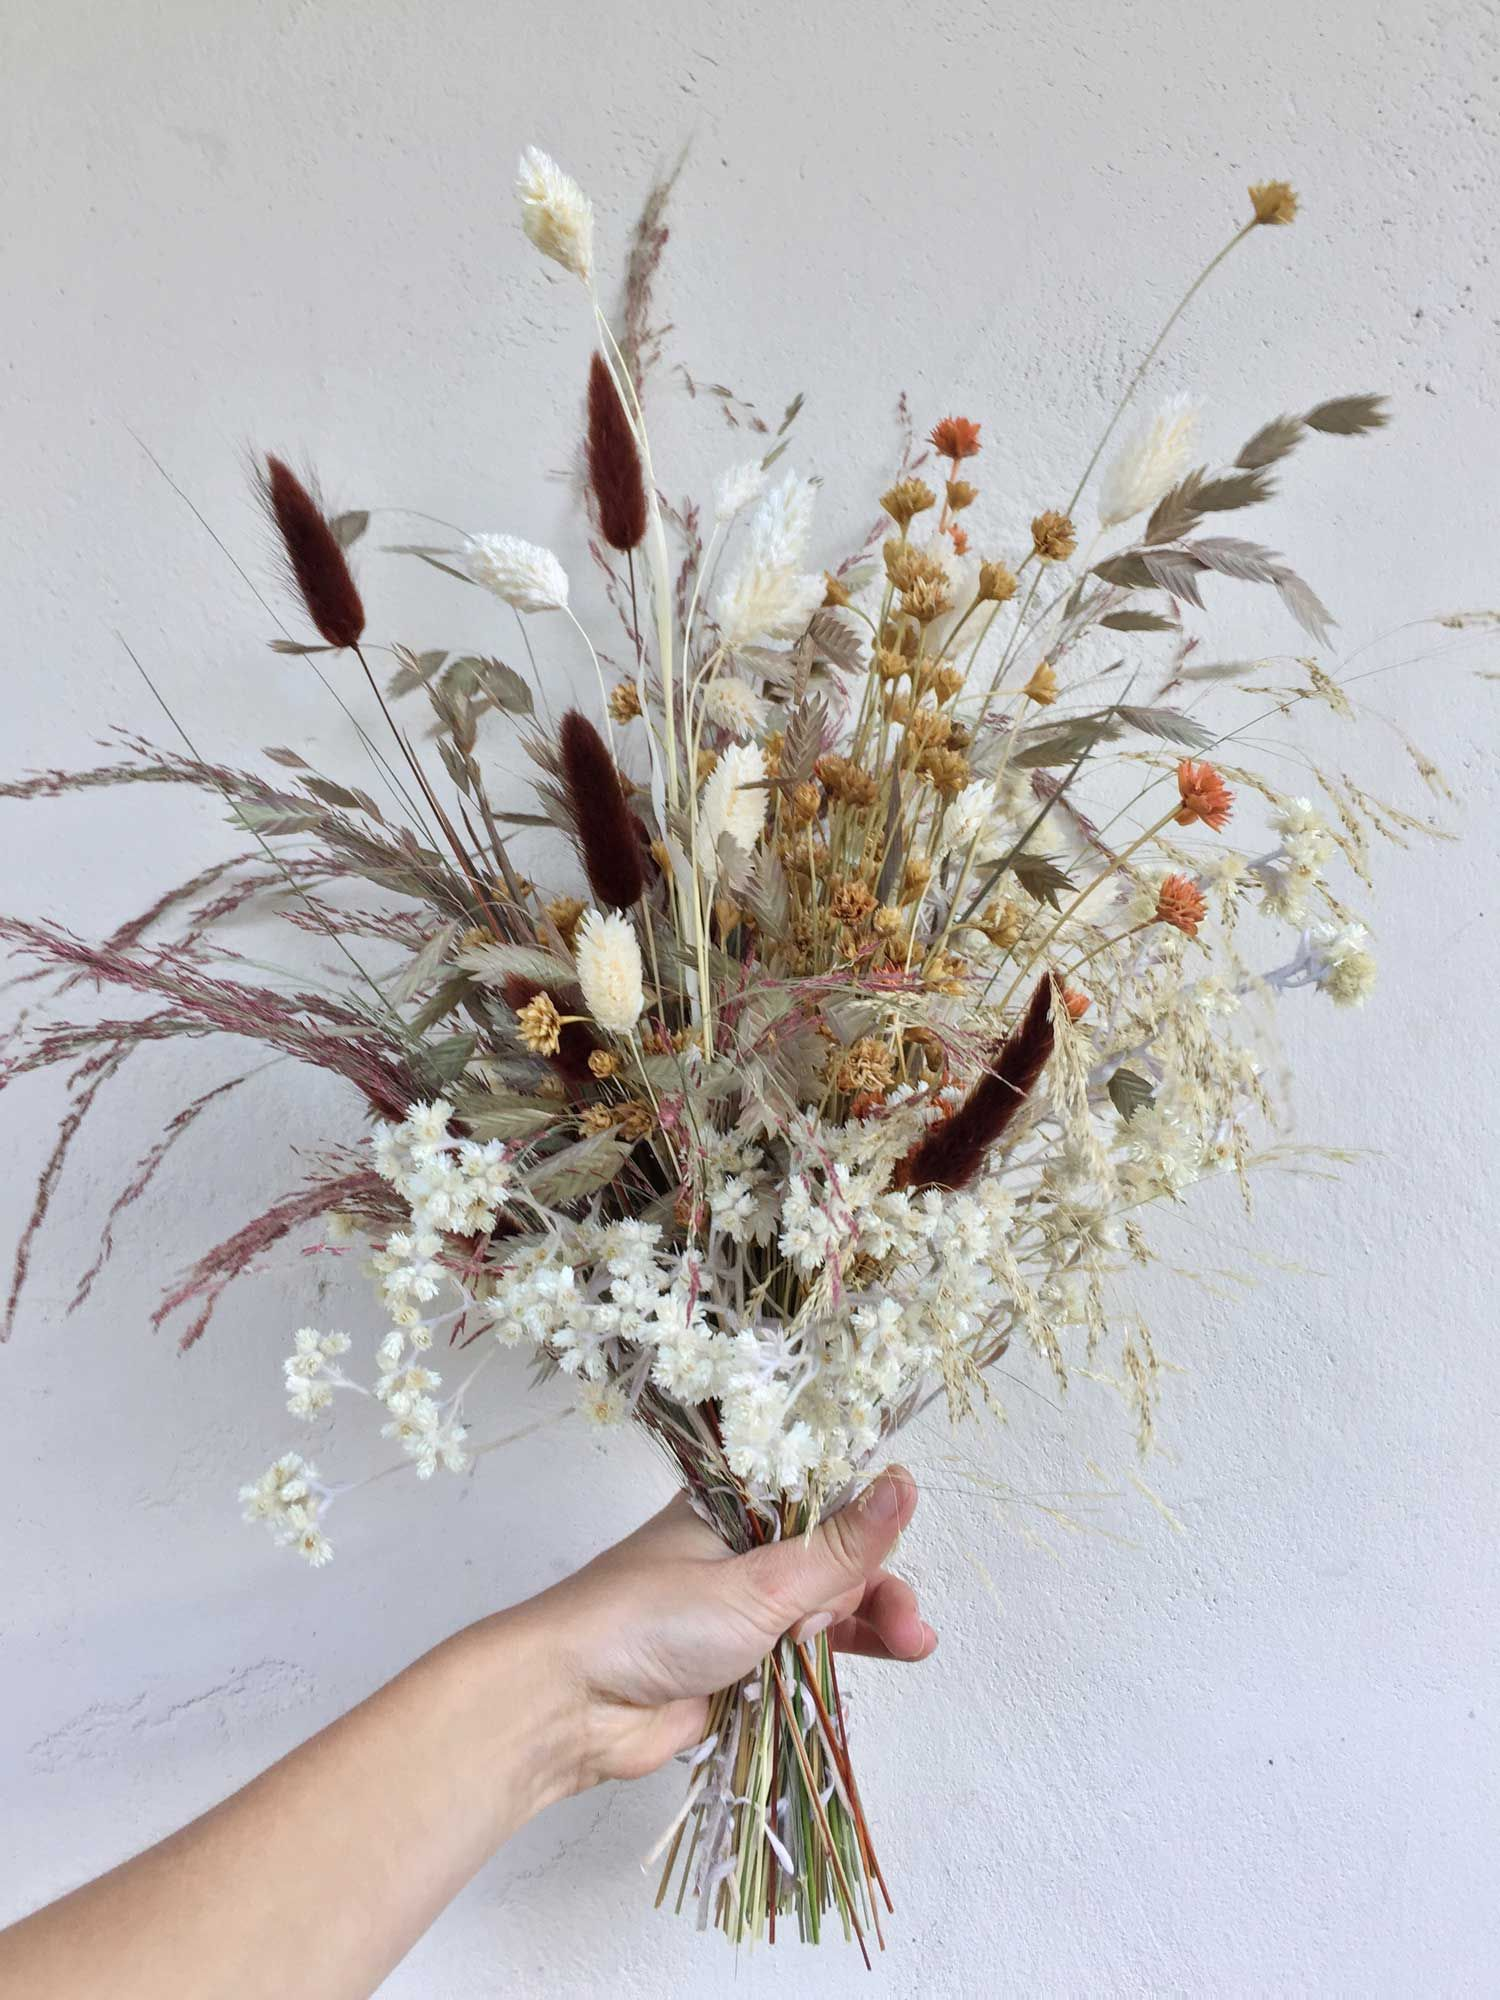 Floral Designer Siri Thorson On How To Make The Most Of Indoor Displays During Months Of Precious Dried Flowers Dried Flower Bouquet Dried Flower Arrangements